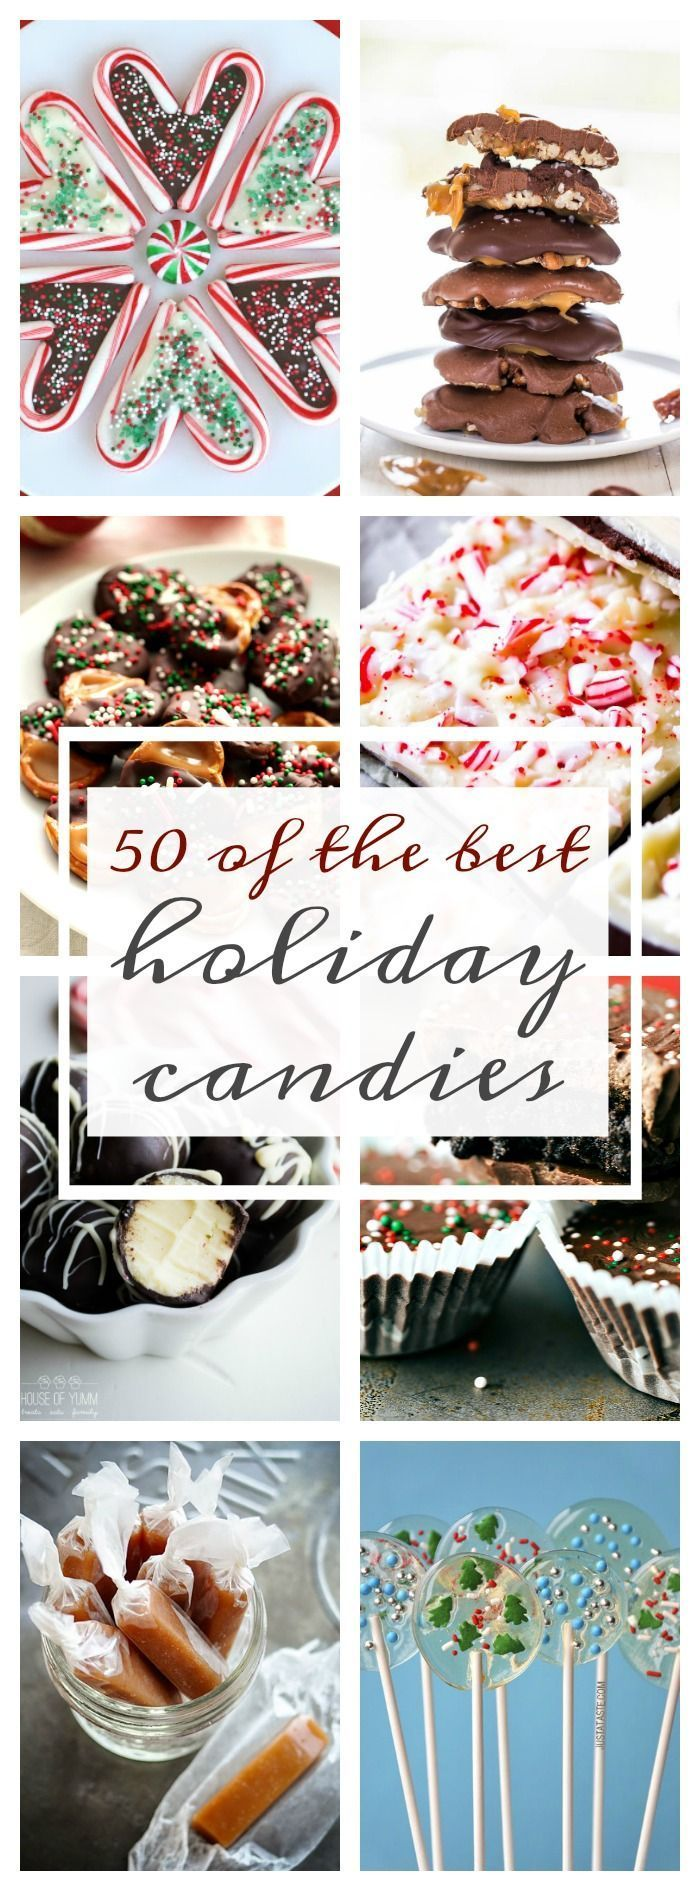 50 of the Best Holiday Candies - A Dash of Sanity